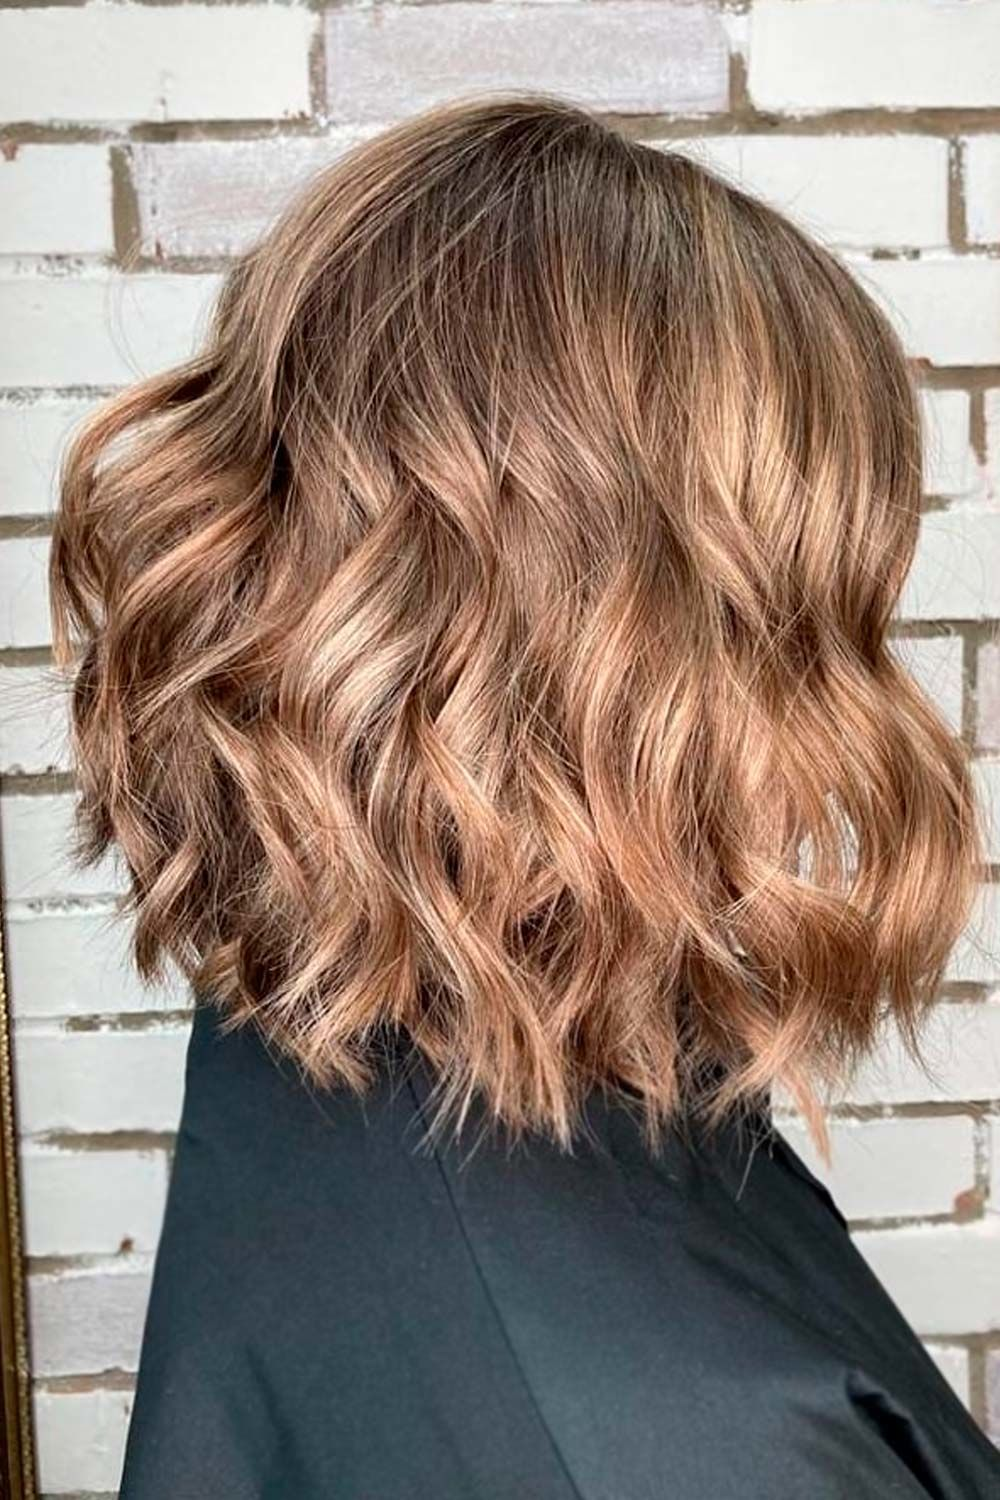 Bob Haircut With Highlights , pictures of dark hair with highlights, short dark hair with blonde highlights, dark brown hair with gray highlights